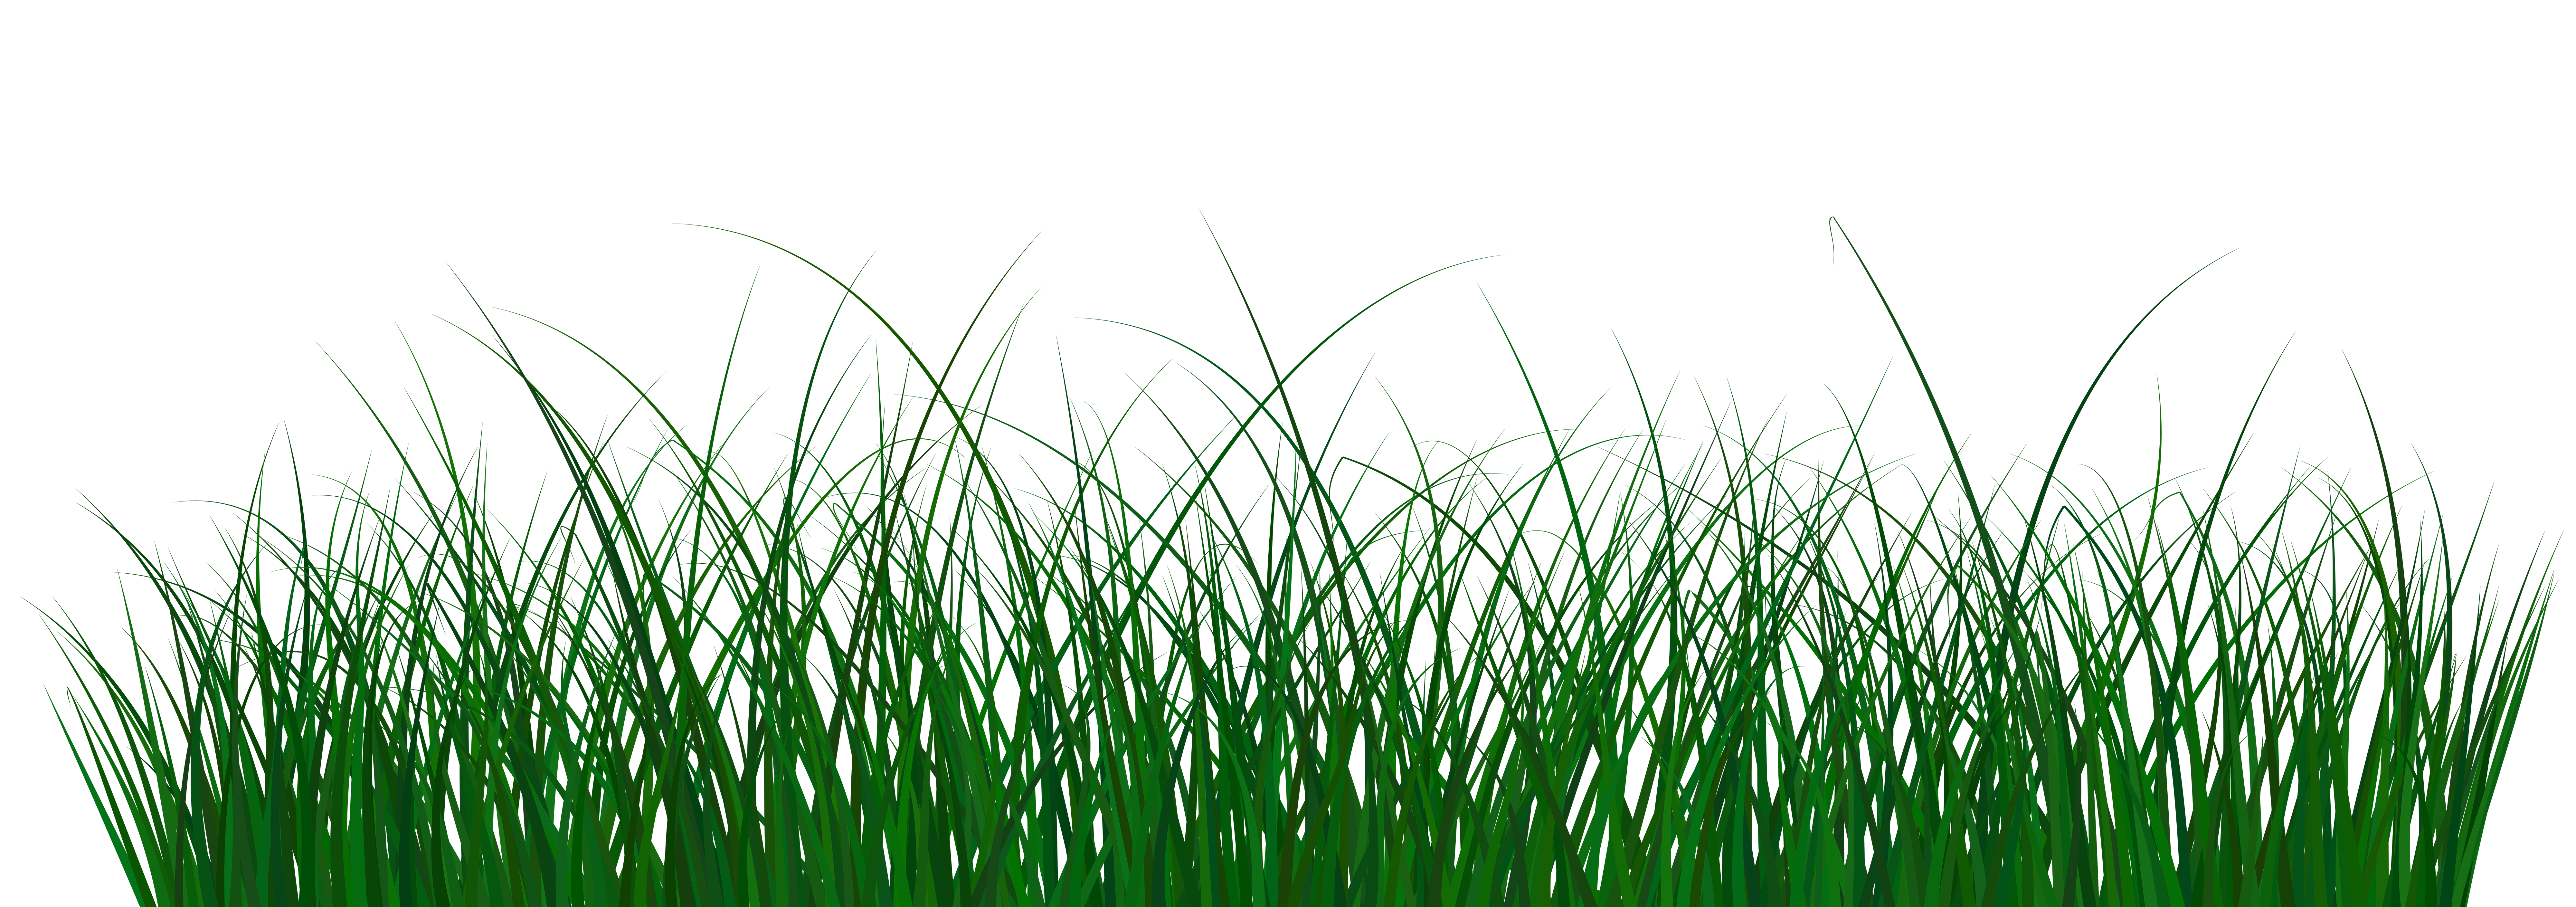 Clipart green grass banner royalty free stock Green Grass PNG Clip Art Image | Gallery Yopriceville - High ... banner royalty free stock